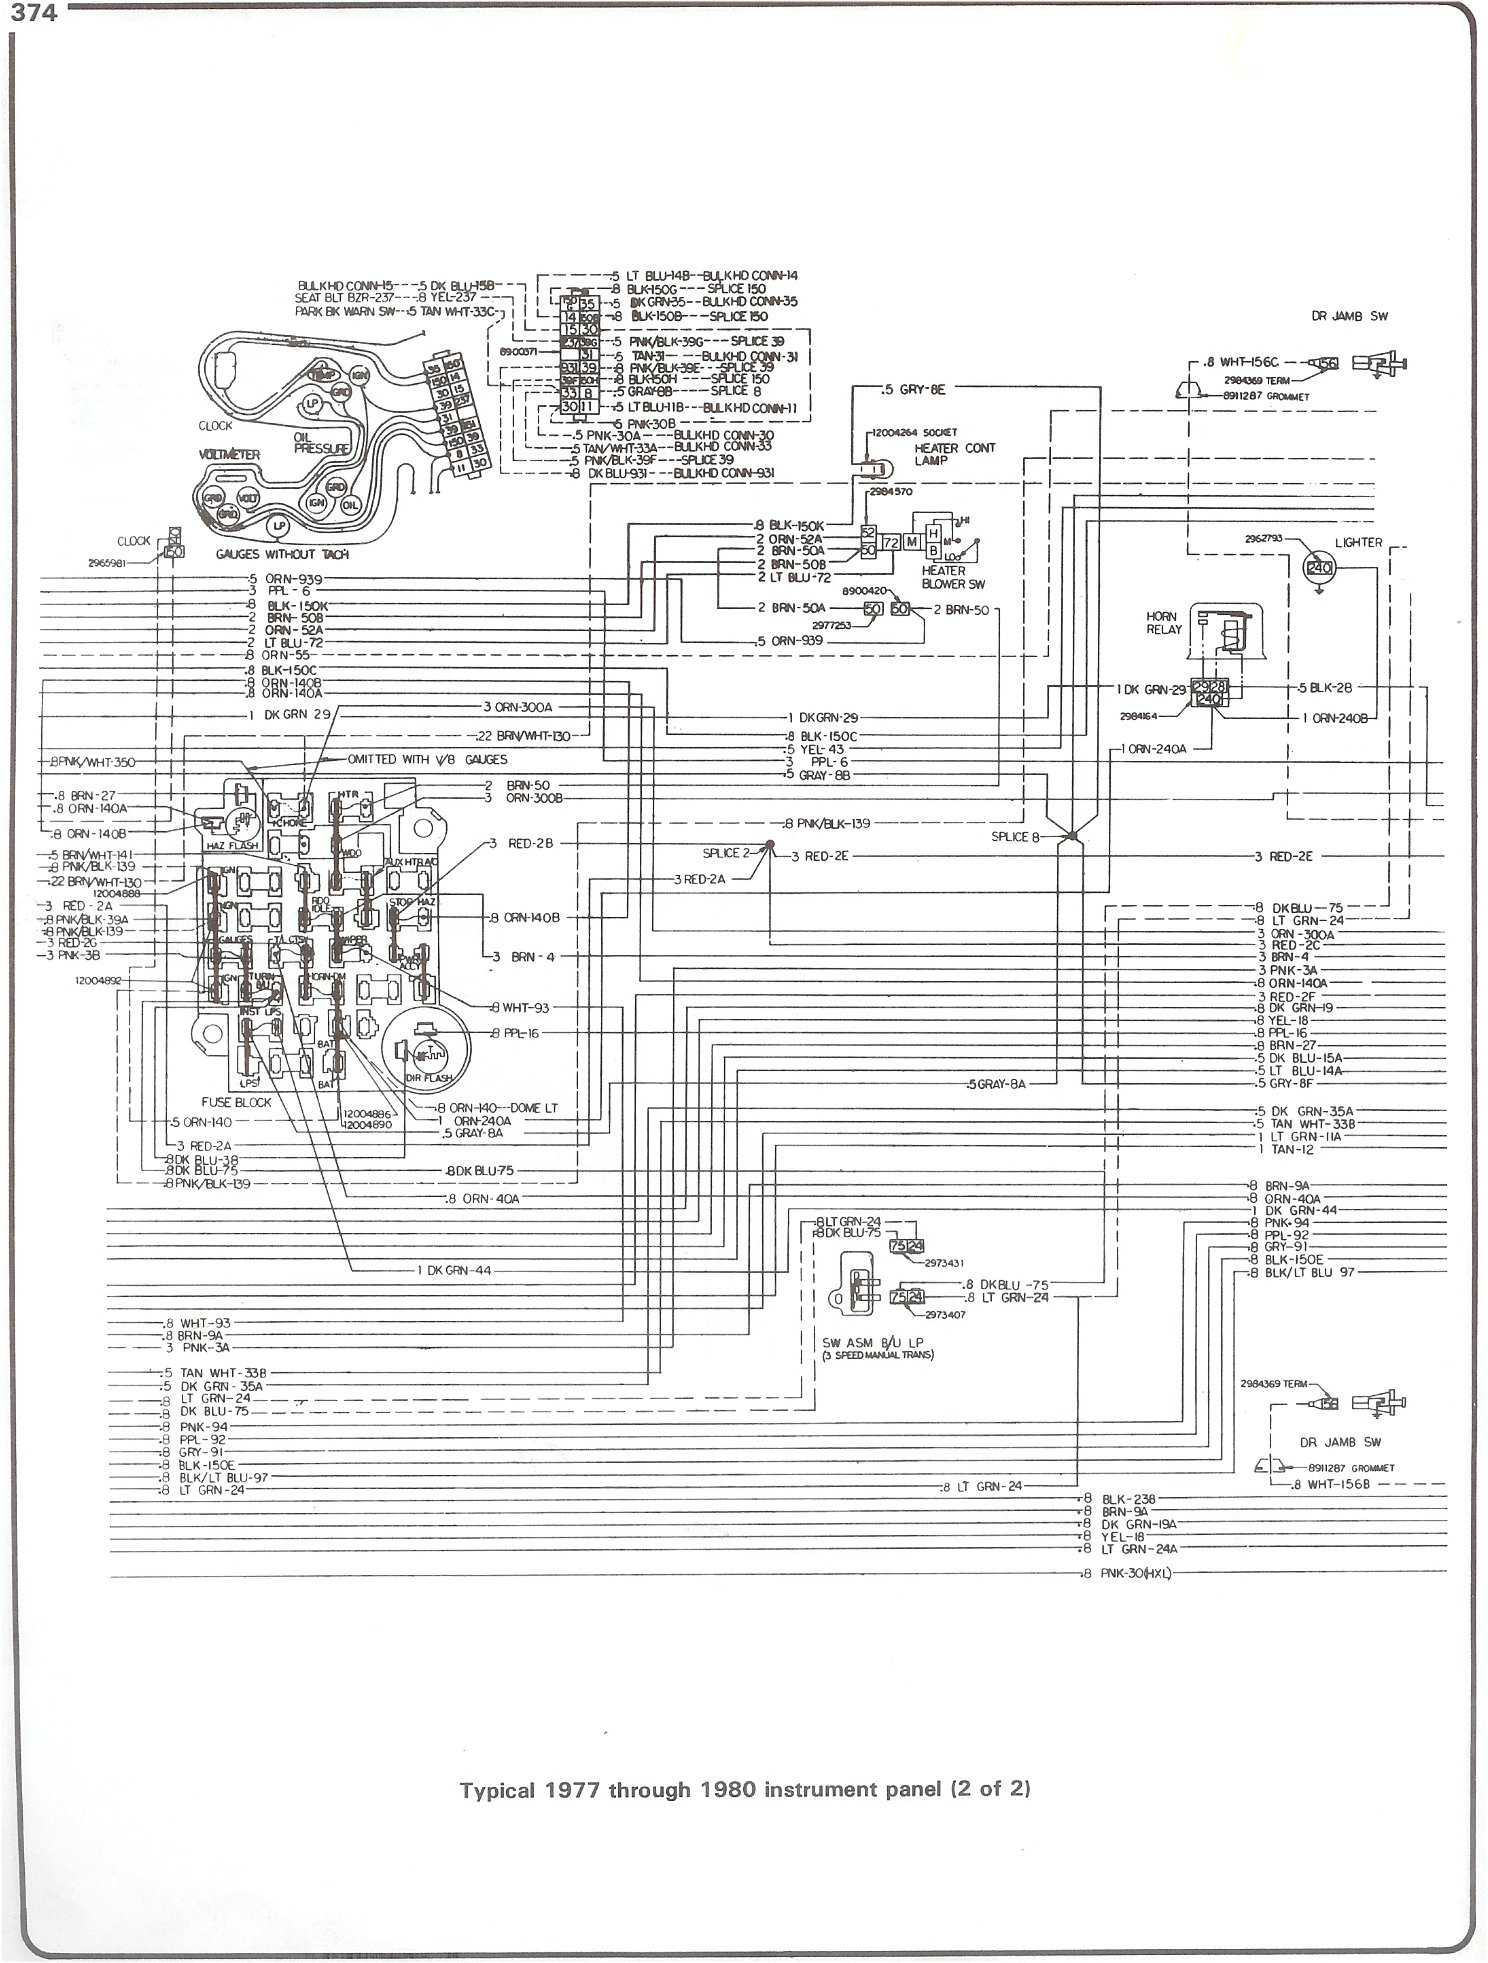 complete 73 87 wiring diagrams rh forum 73 87chevytrucks com 70 Chevy Truck Wiring Diagram 77 Chevy Truck Wiring Diagram